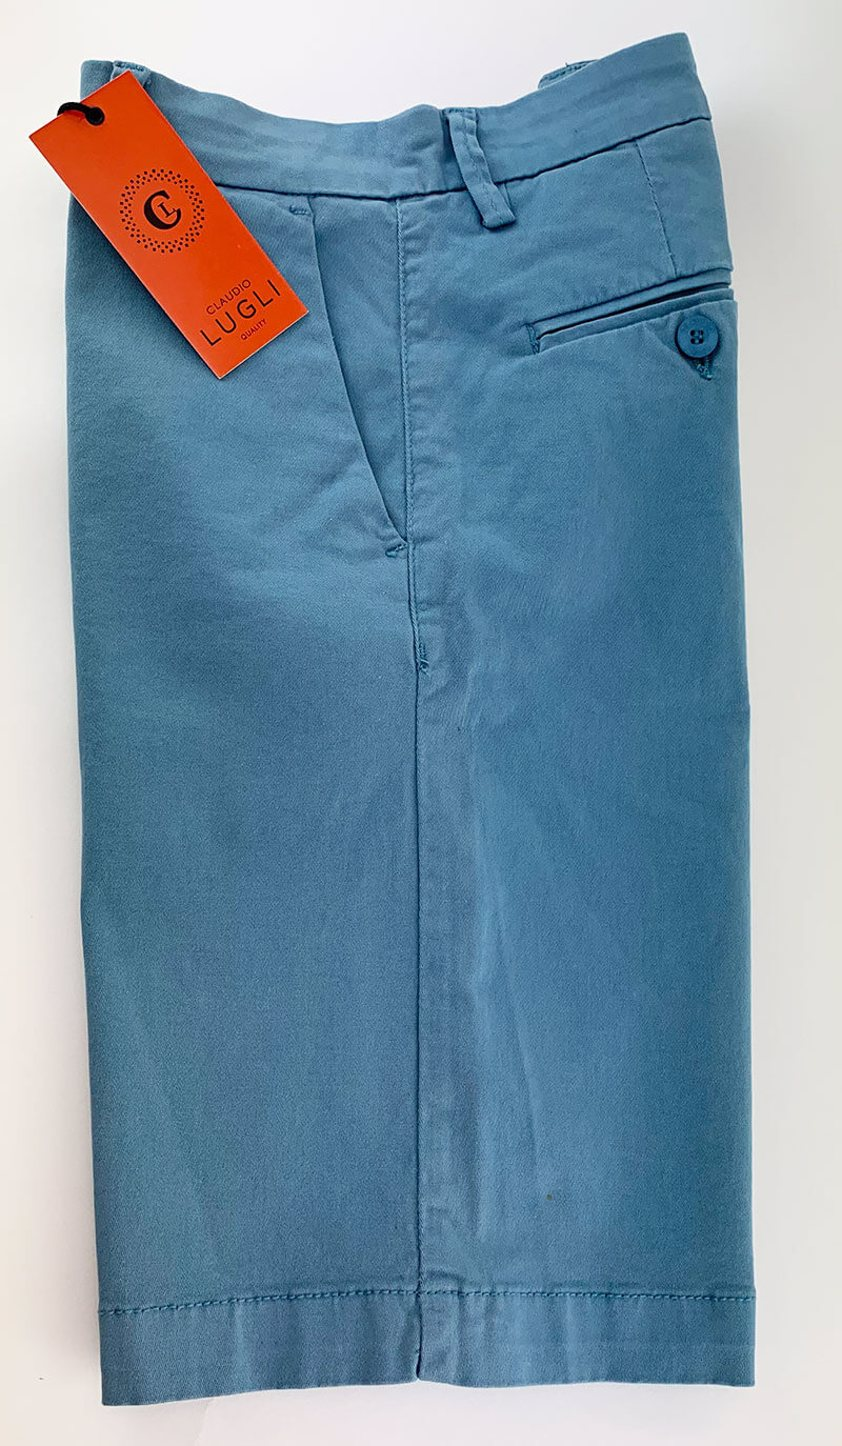 Sky Slim Fit Chino Style Shorts - Save 50%